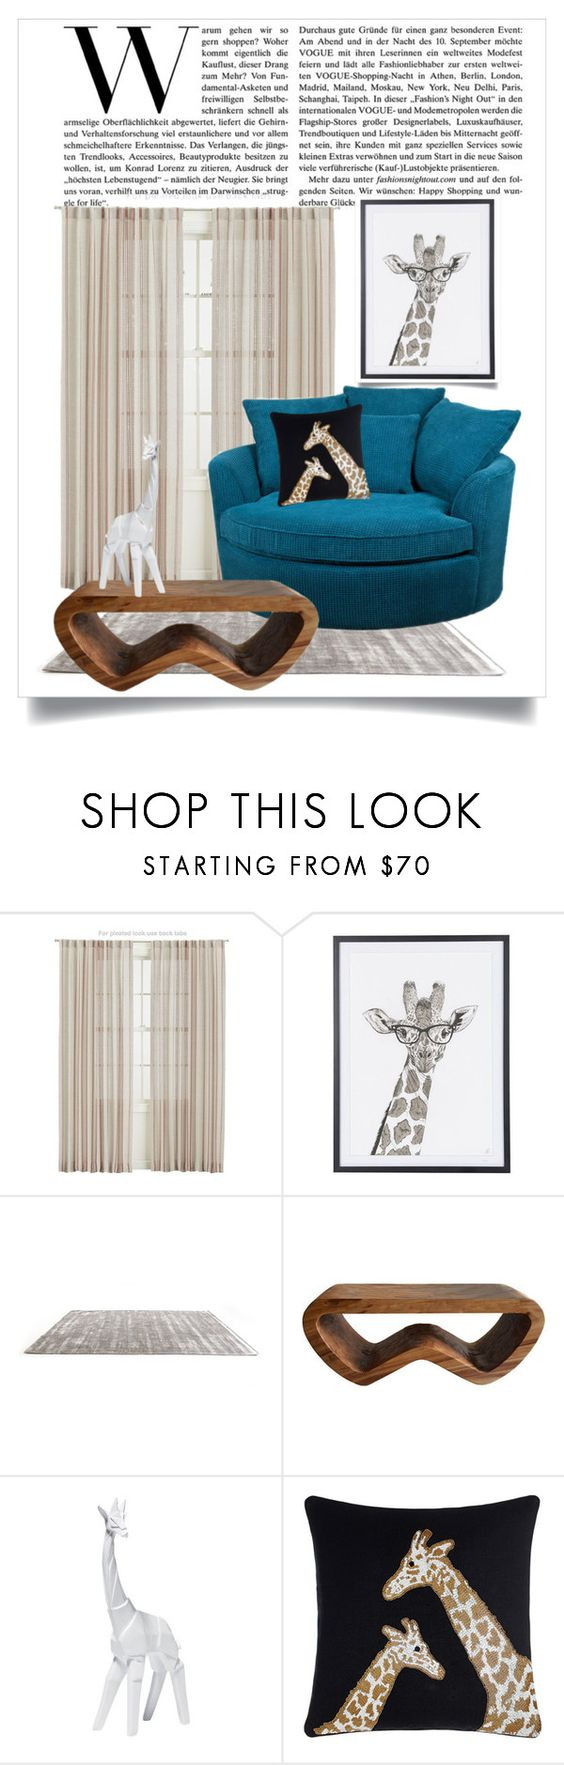 """""""A Lovely Giraffe Set"""" by hockey4ever15 ❤ liked on Polyvore featuring interior, interiors, interior design, home, home decor, interior decorating, Crate and Barrel, KARE and Jonathan Adler"""